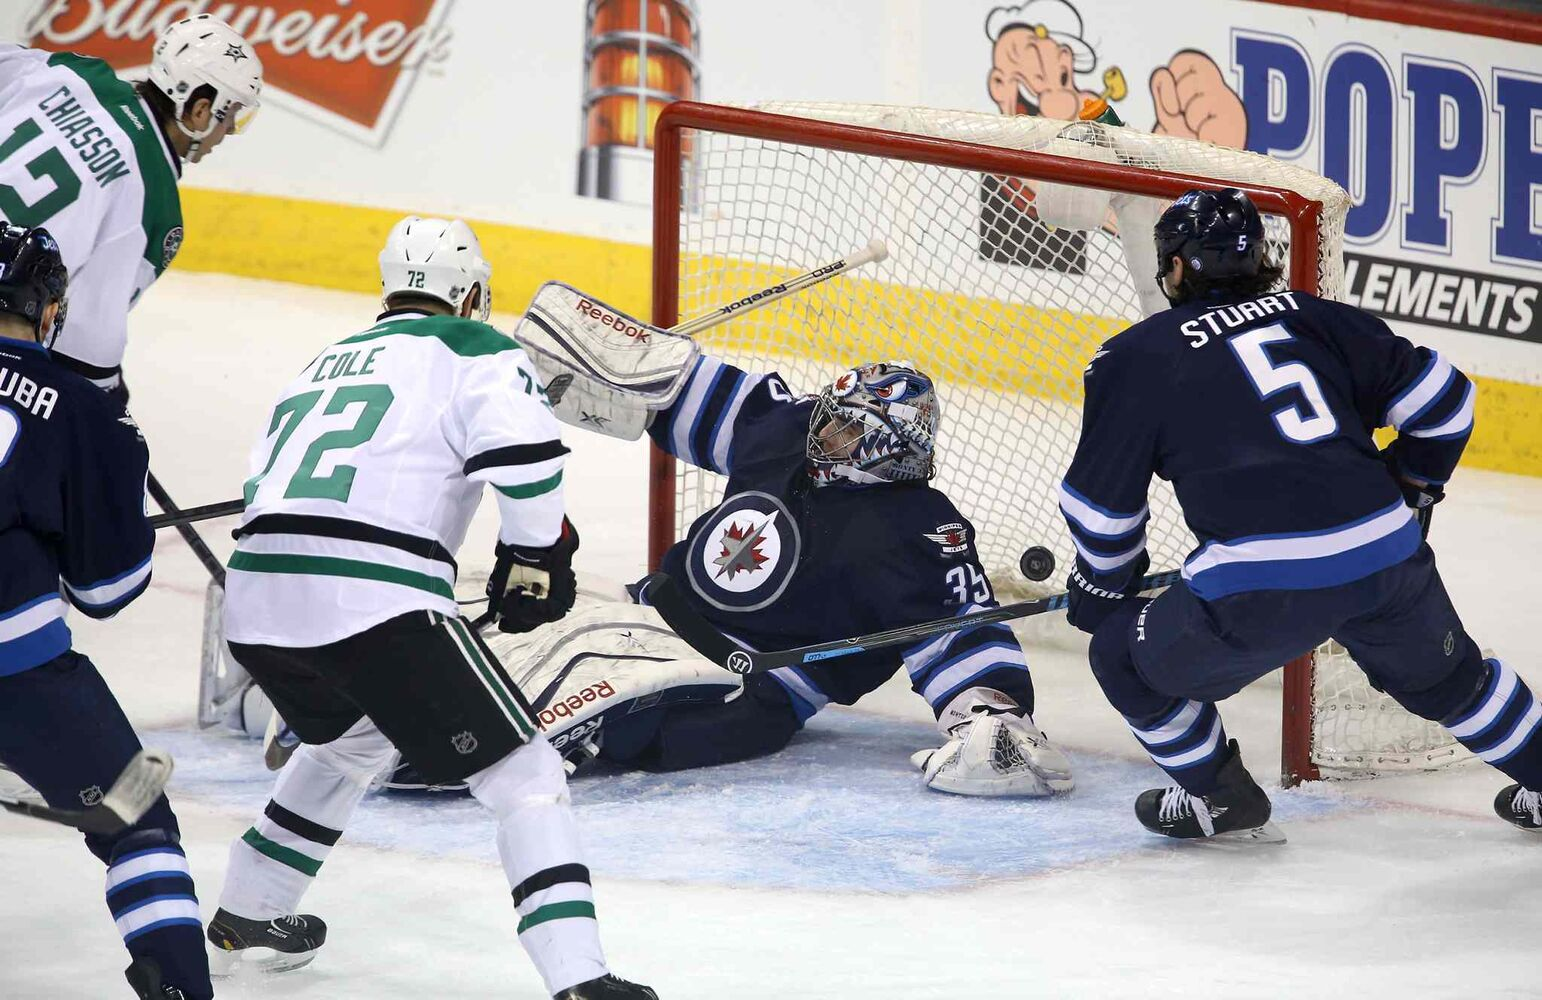 The Dallas Stars Alex Chiasson (12) scores on Winnipeg Jets goaltender Al Montoya in the first period. (TREVOR HAGAN / THE CANADIAN PRESS)